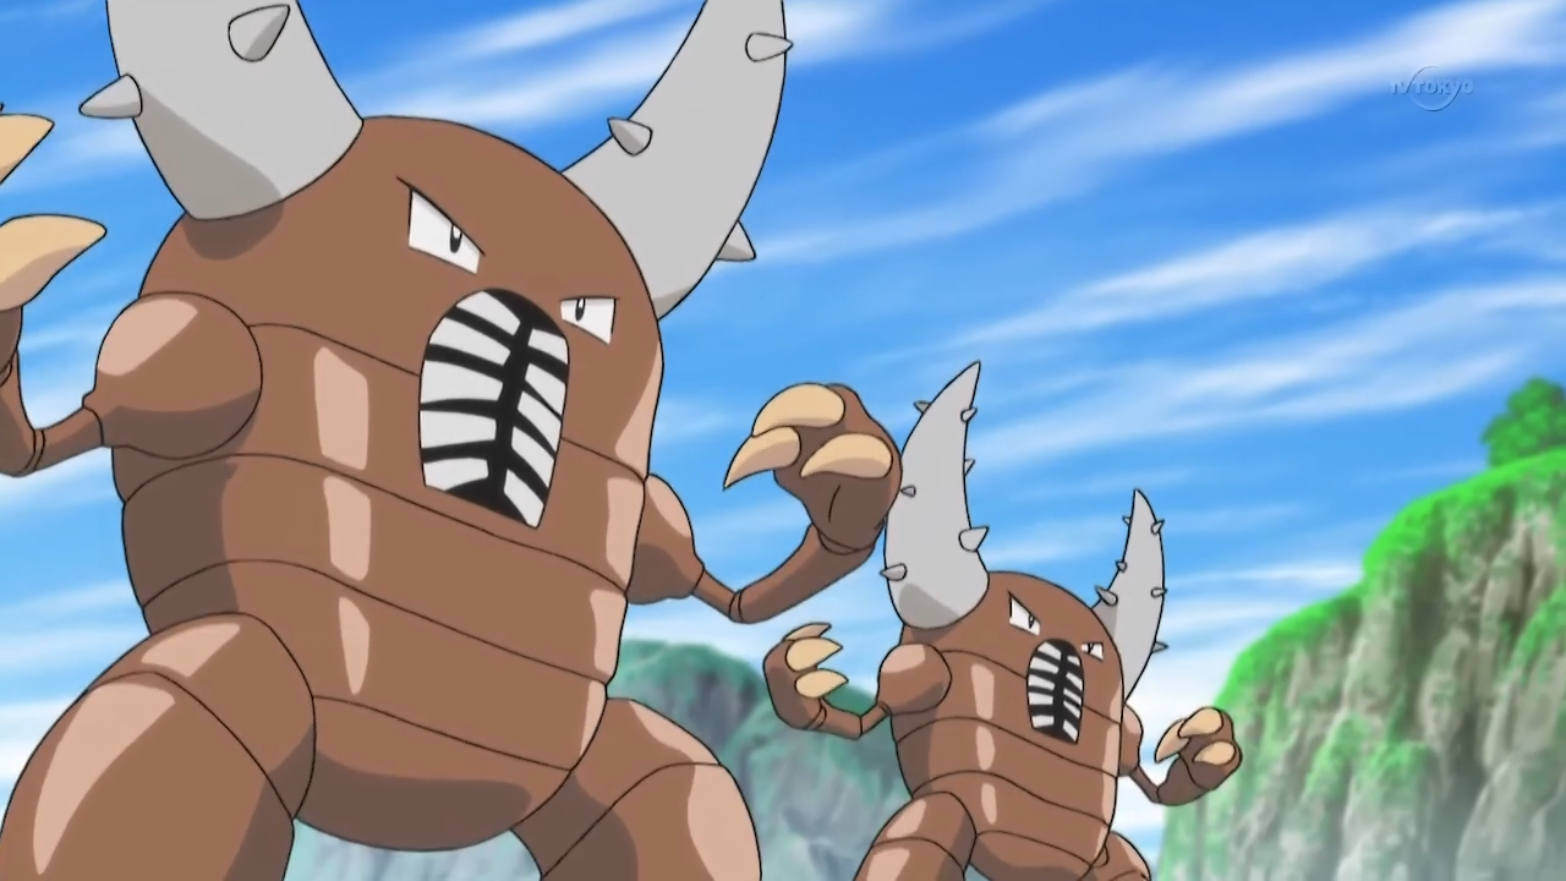 Kenzo Pinsir These Are 15 Of The Ugliest Pokemon Ever